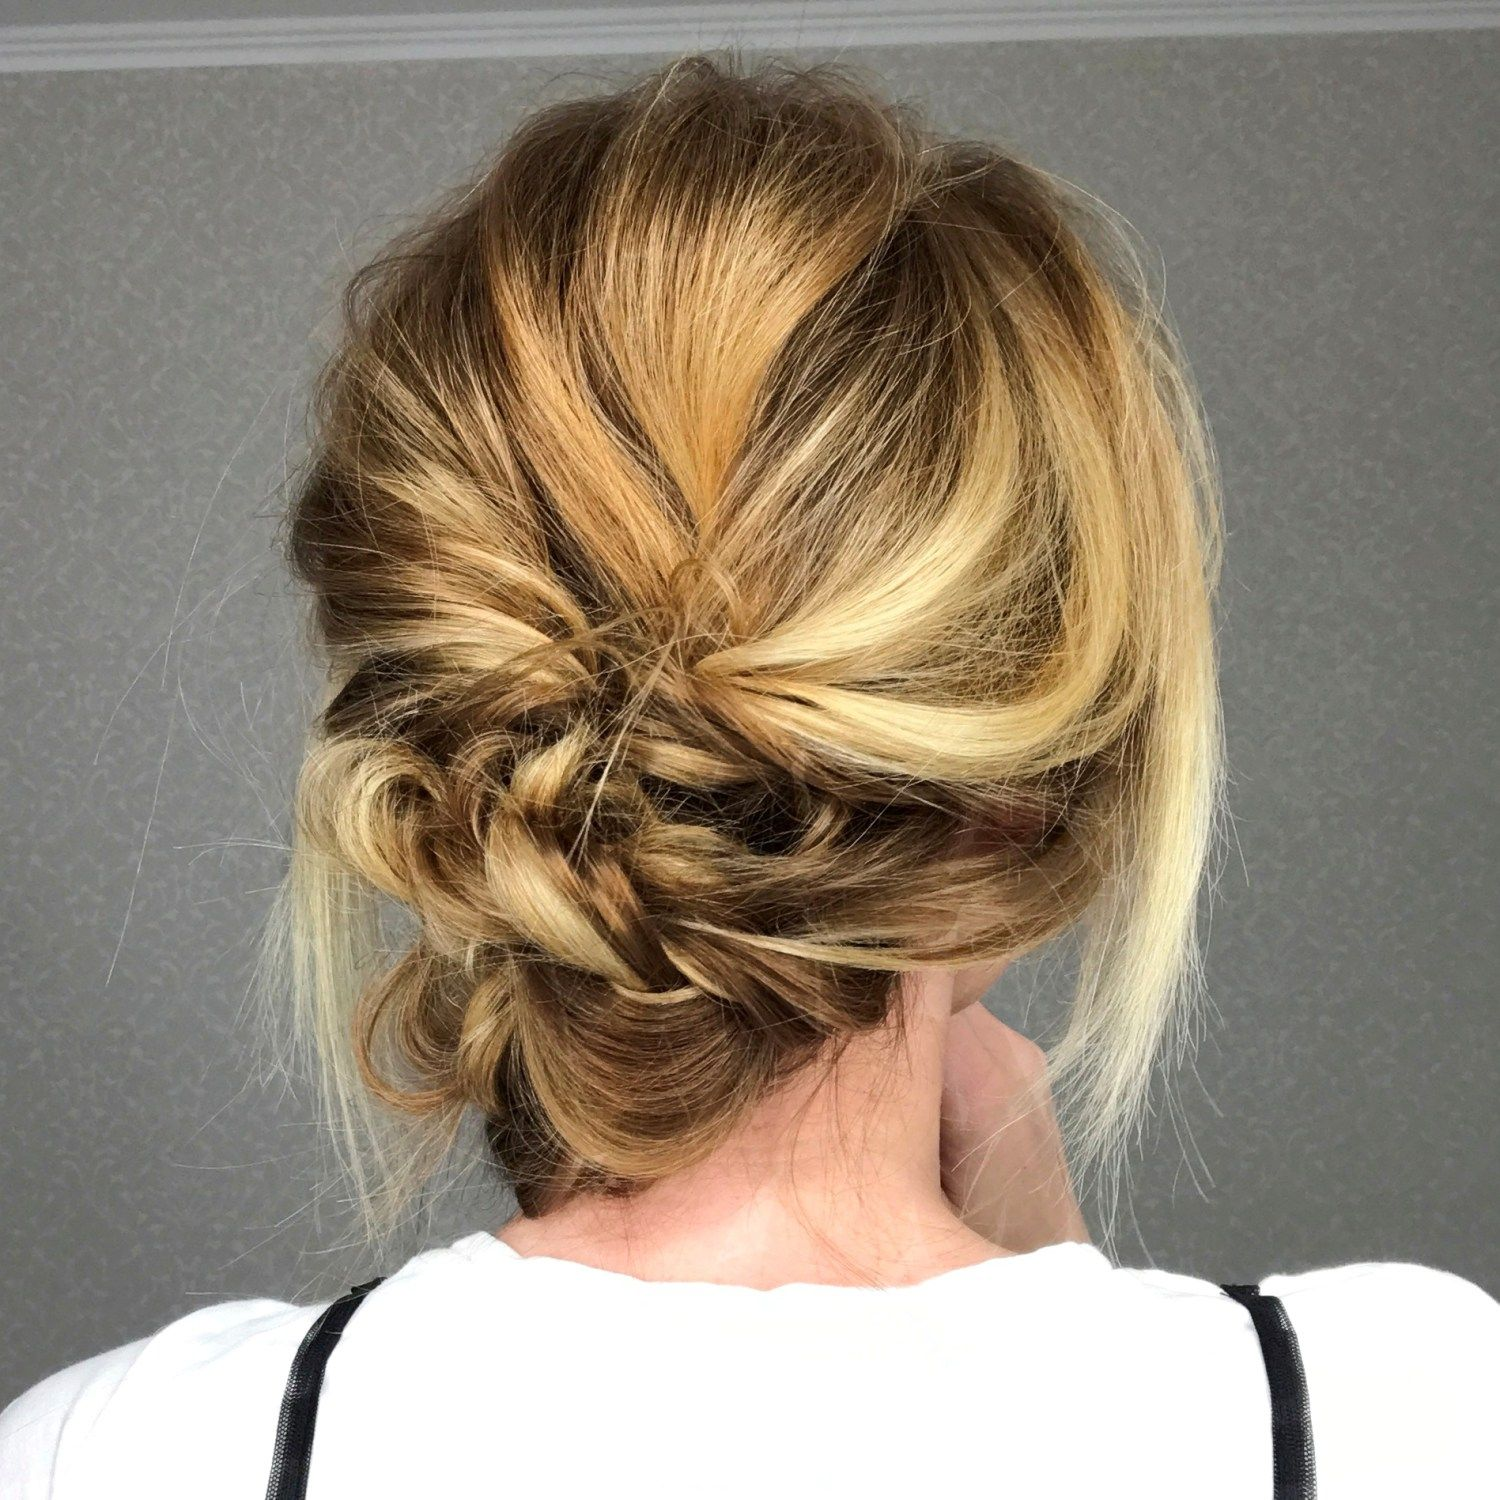 Master These 4 Stylish Bun Hairstyles with Our Step by Step